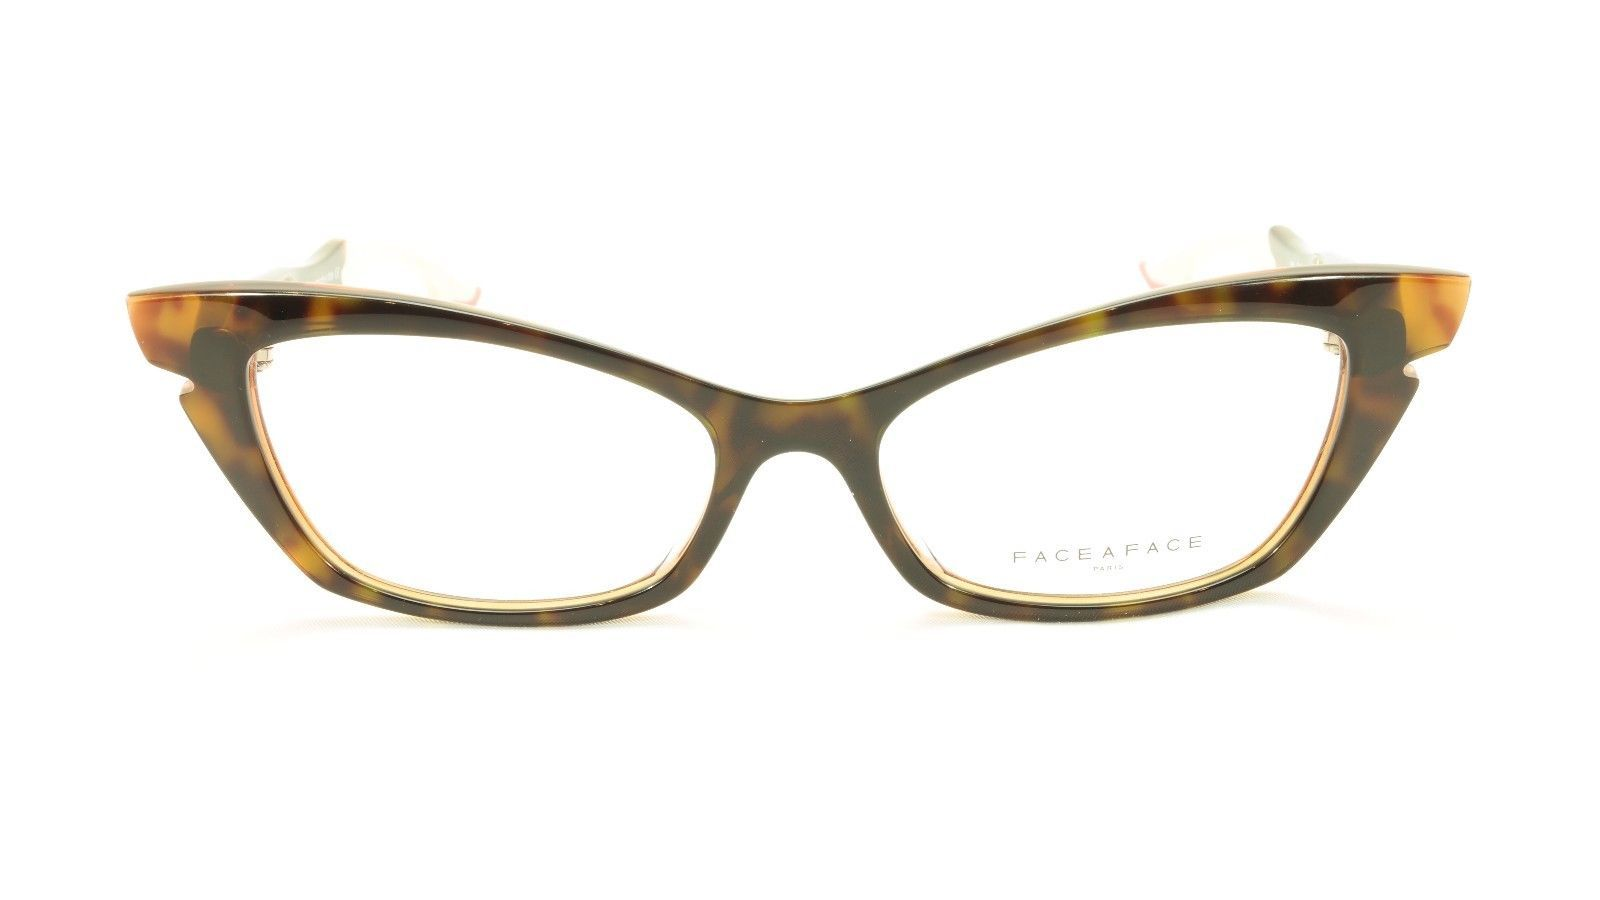 Authentic Face A Face Bocca Sixties 1 Col 461 Dark Tortoise Pink Eyeglasses